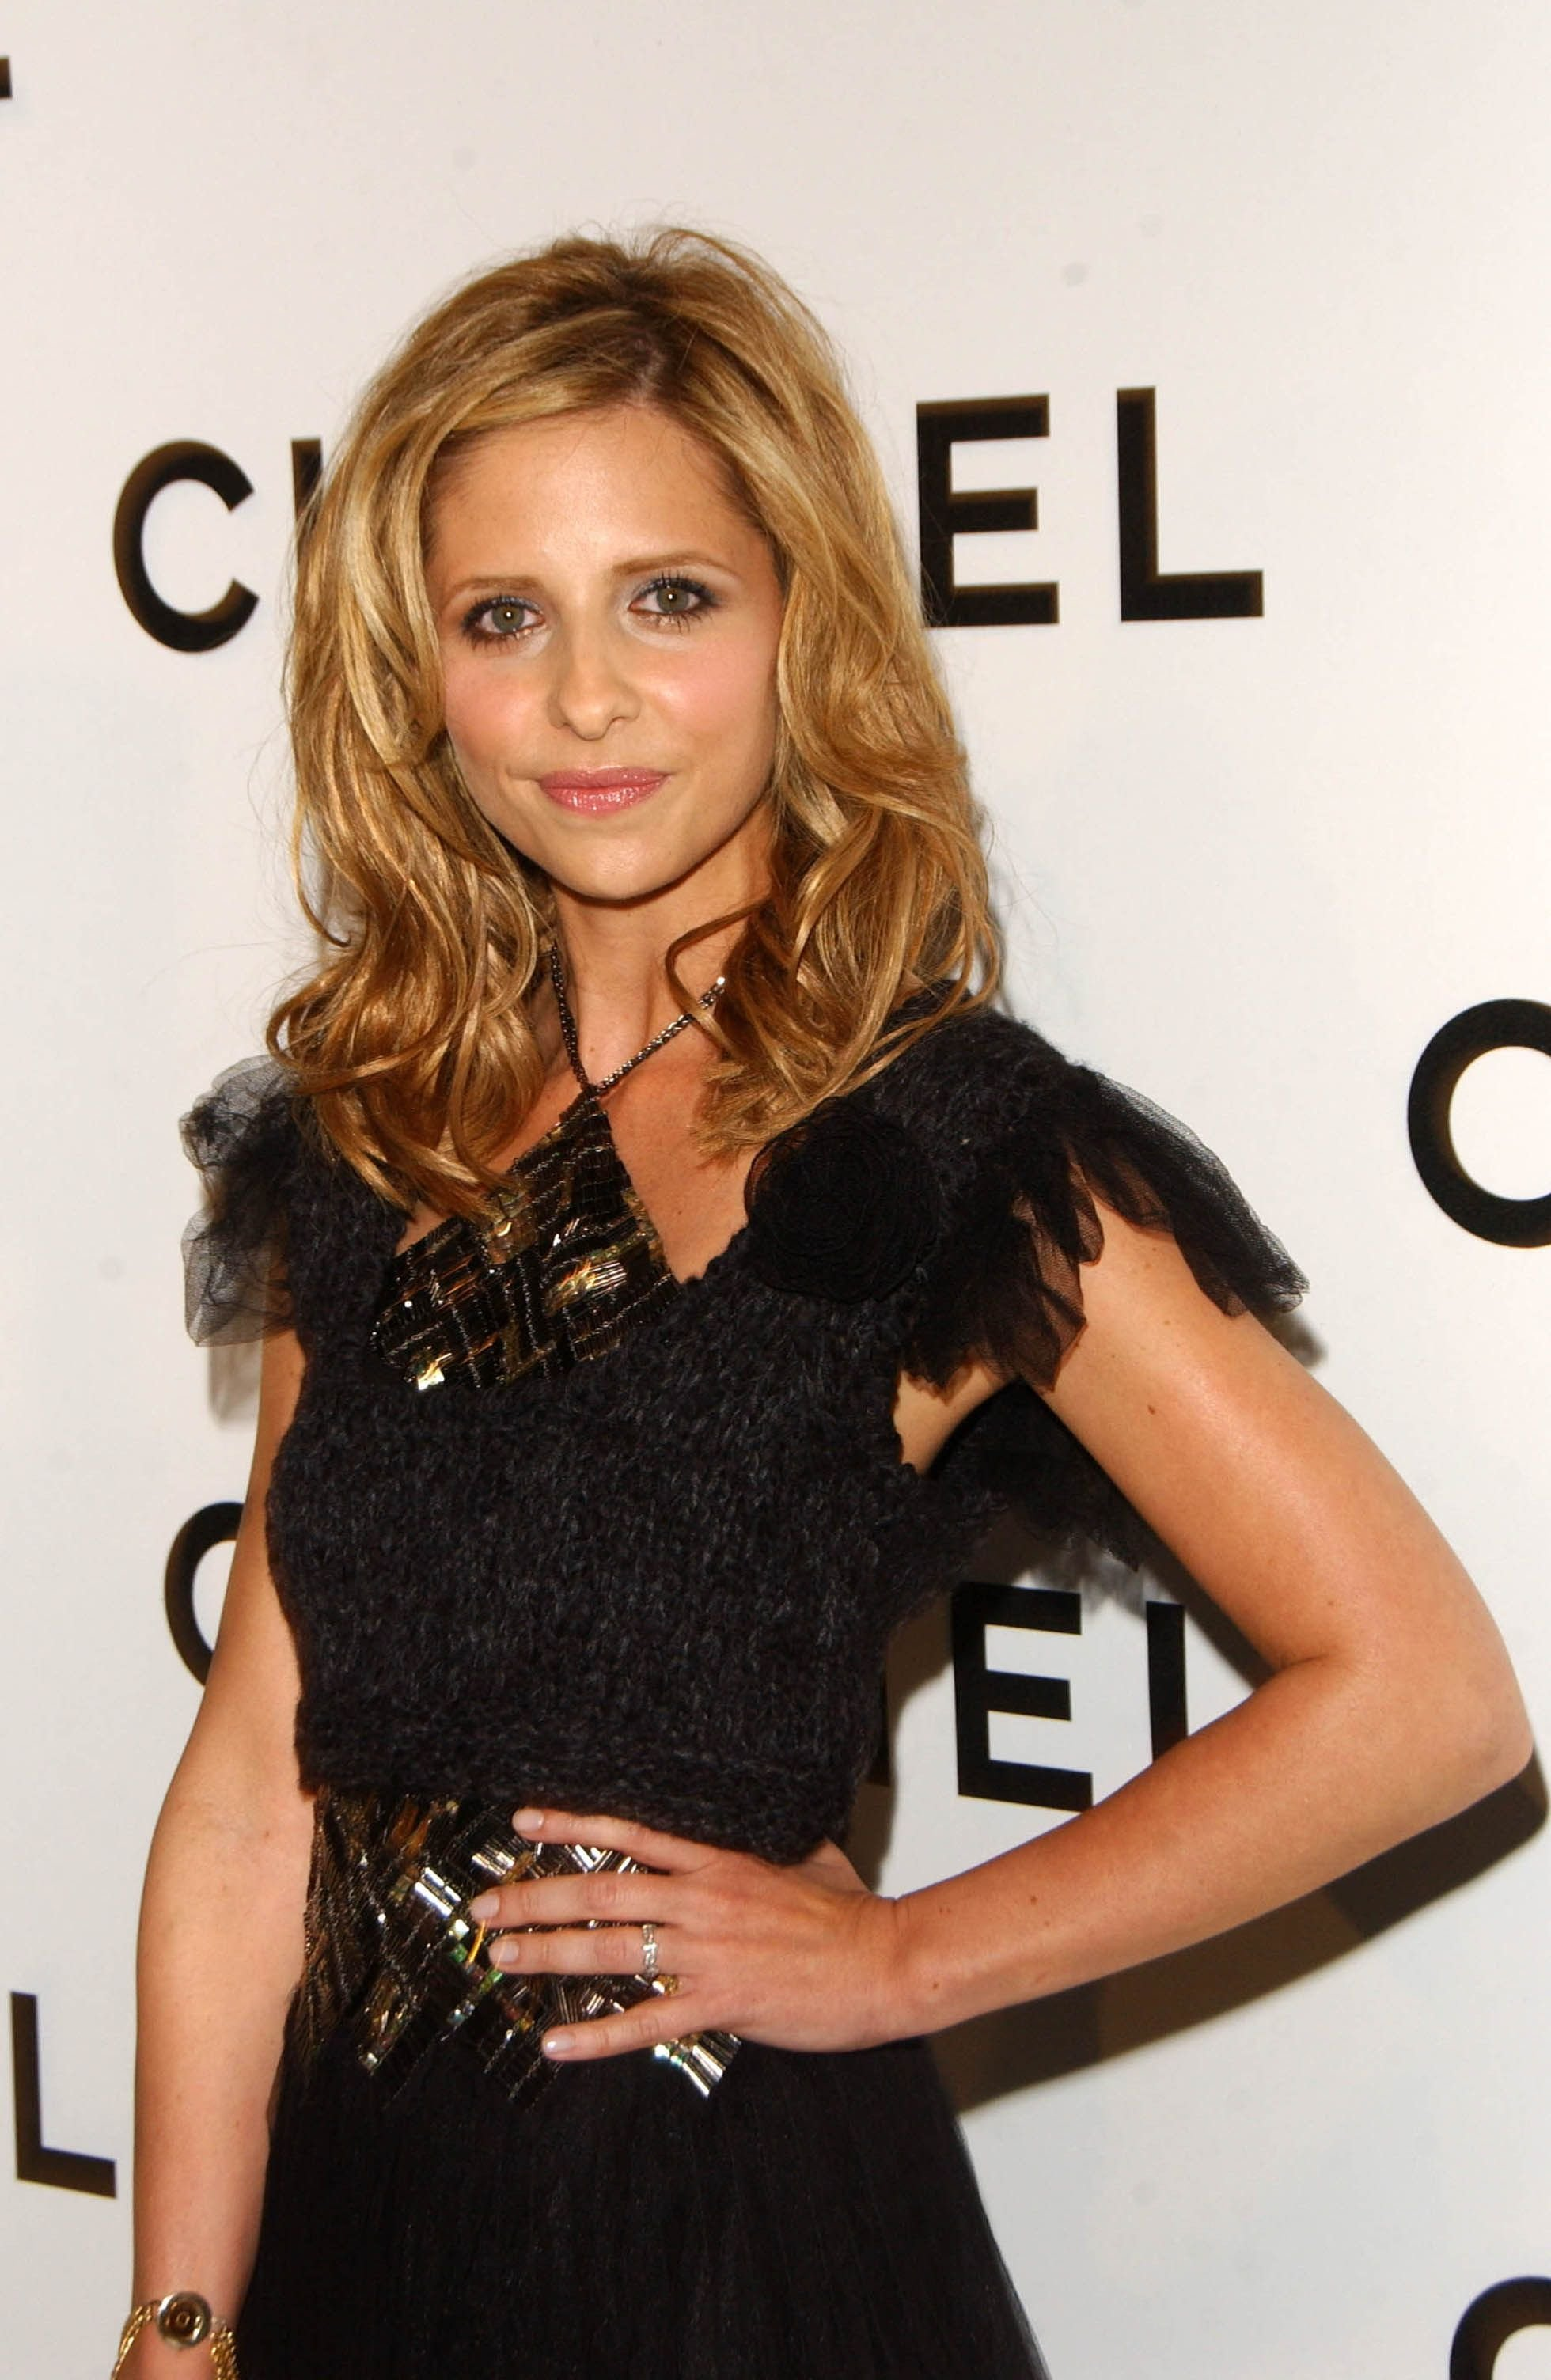 Sarah Michelle Gellar's career wasn't as successful as it used to be / Getty Images